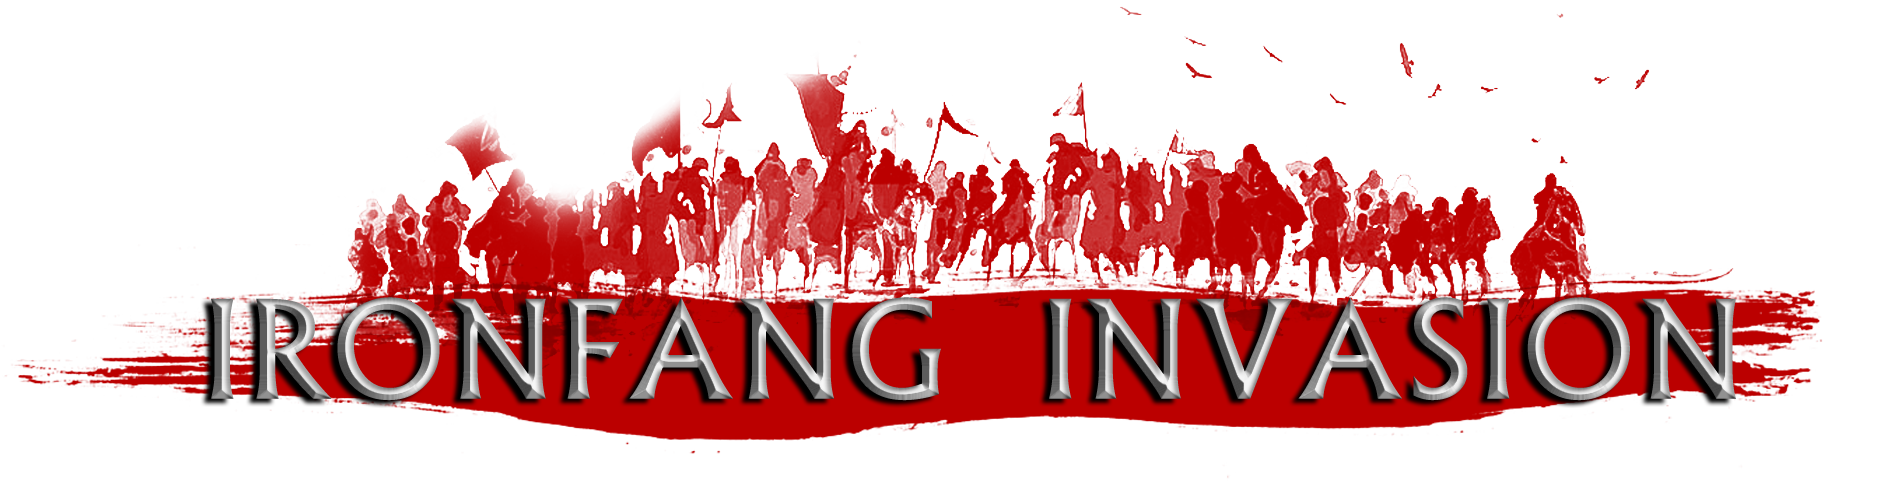 Ironfang invasion banner